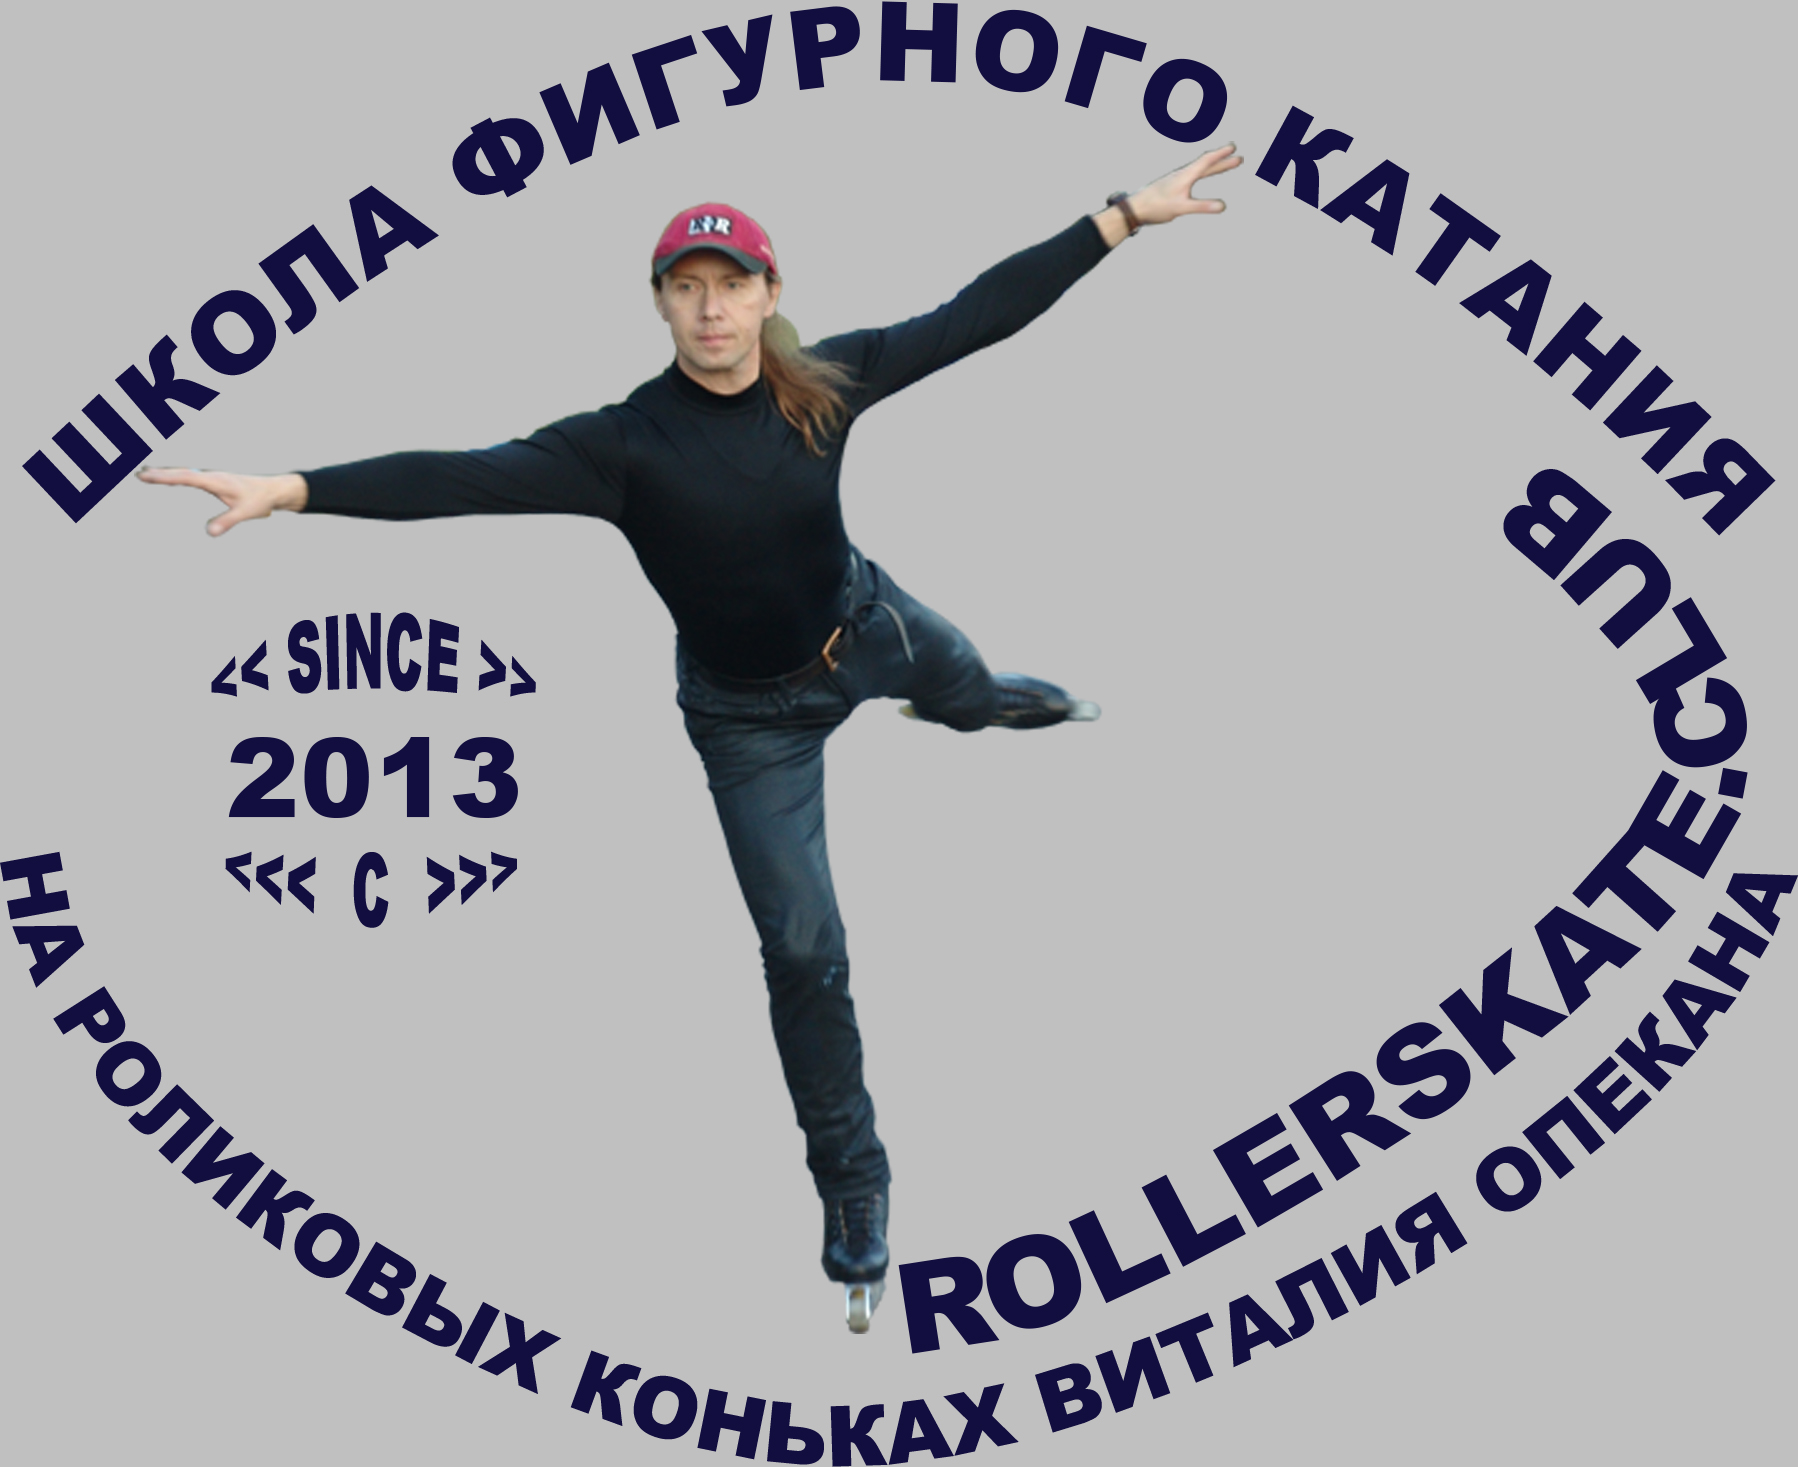 Vitaliy Opekan's school of figure skating Inline